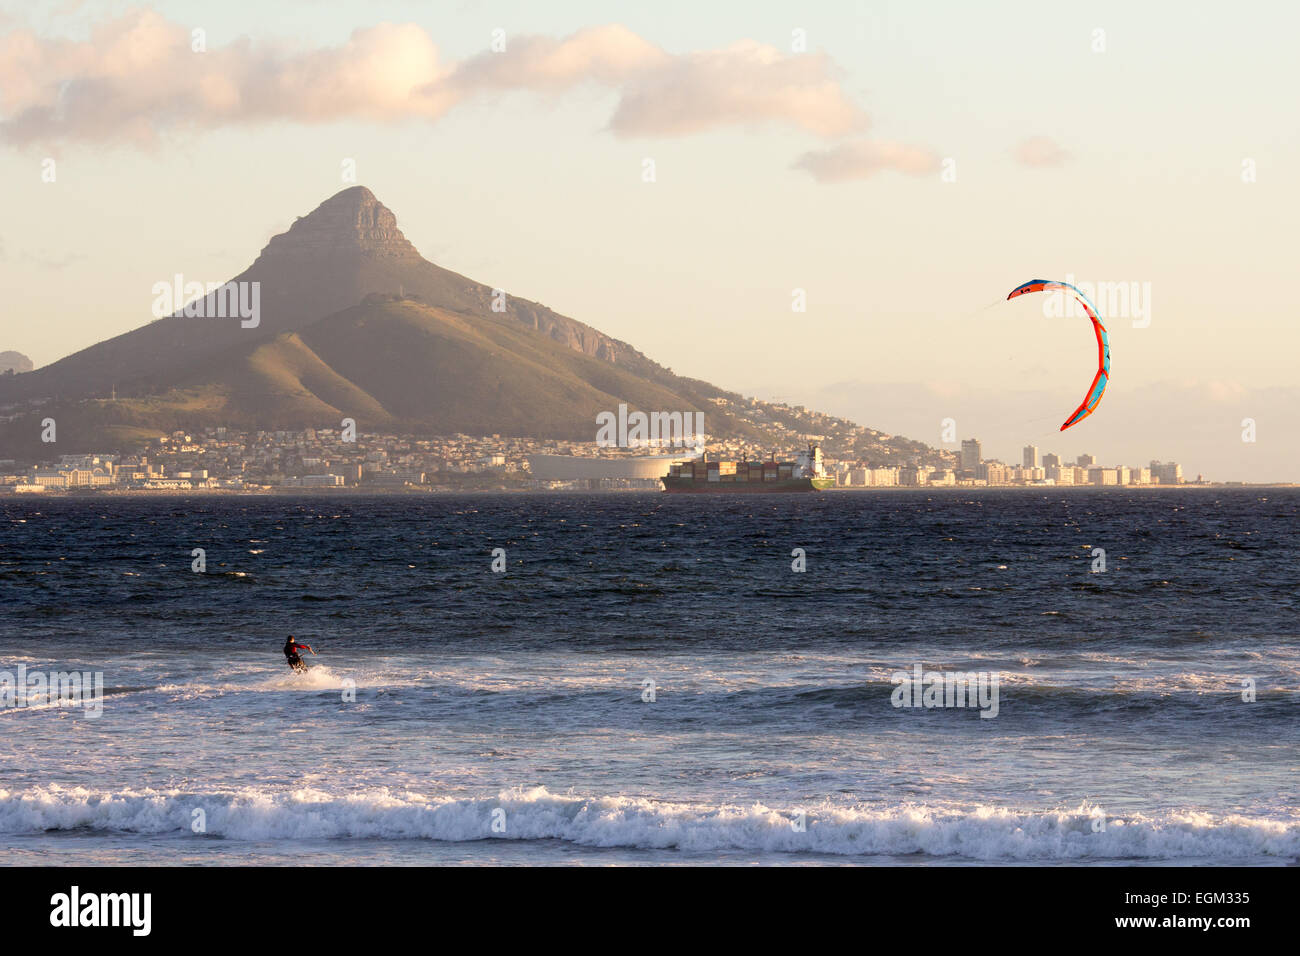 Planche à voile à Cape Town Photo Stock